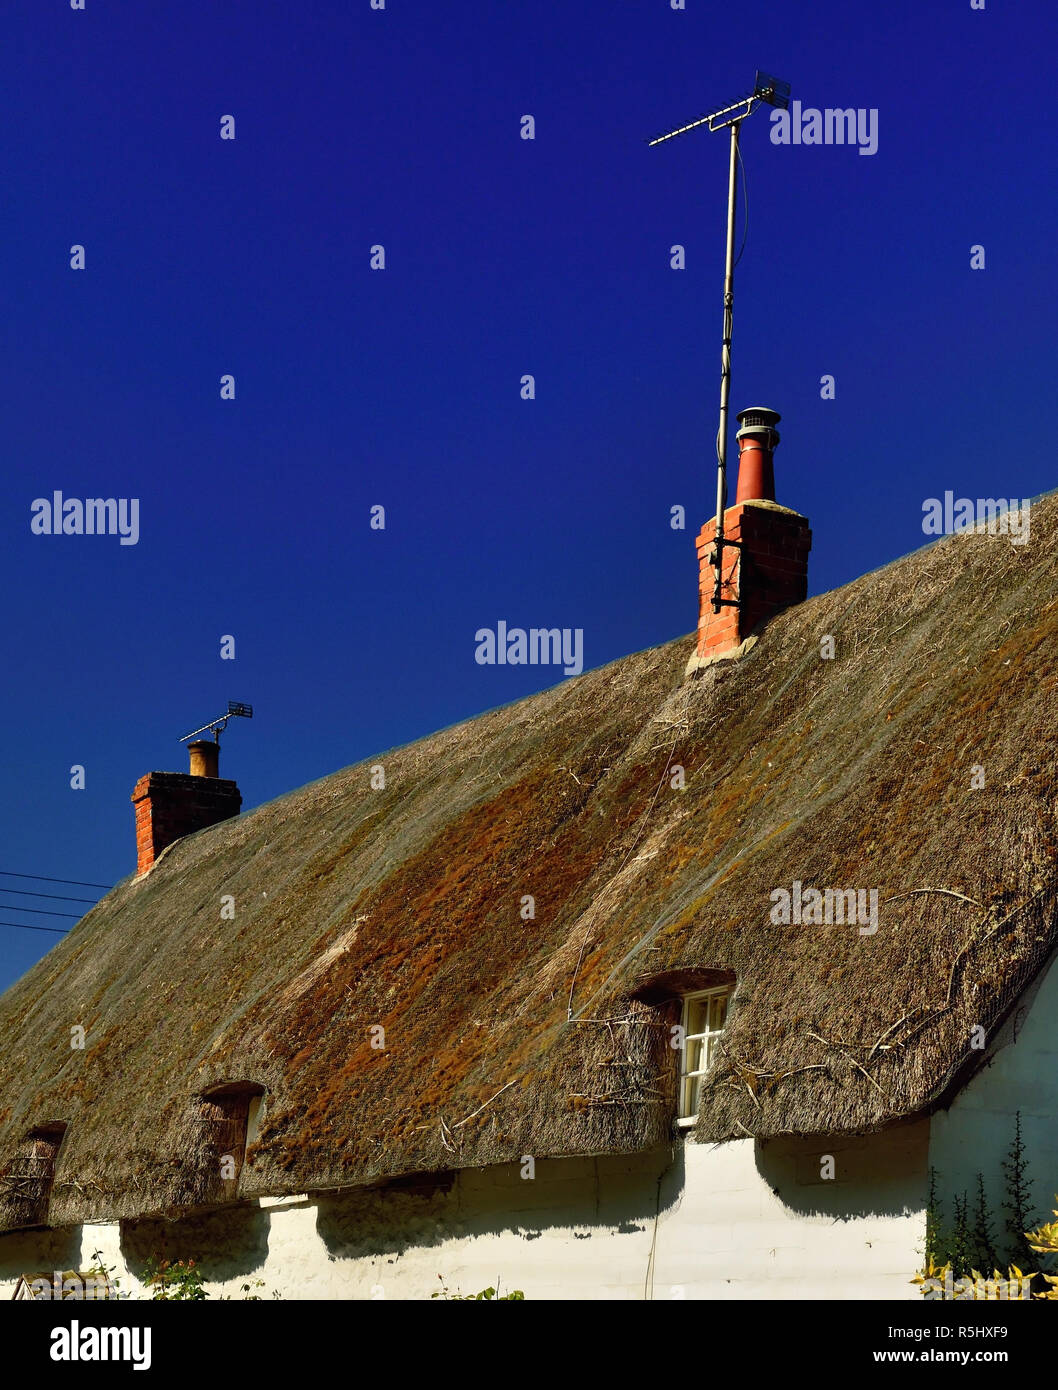 An old thatched cottage with a modern television aerial. - Stock Image